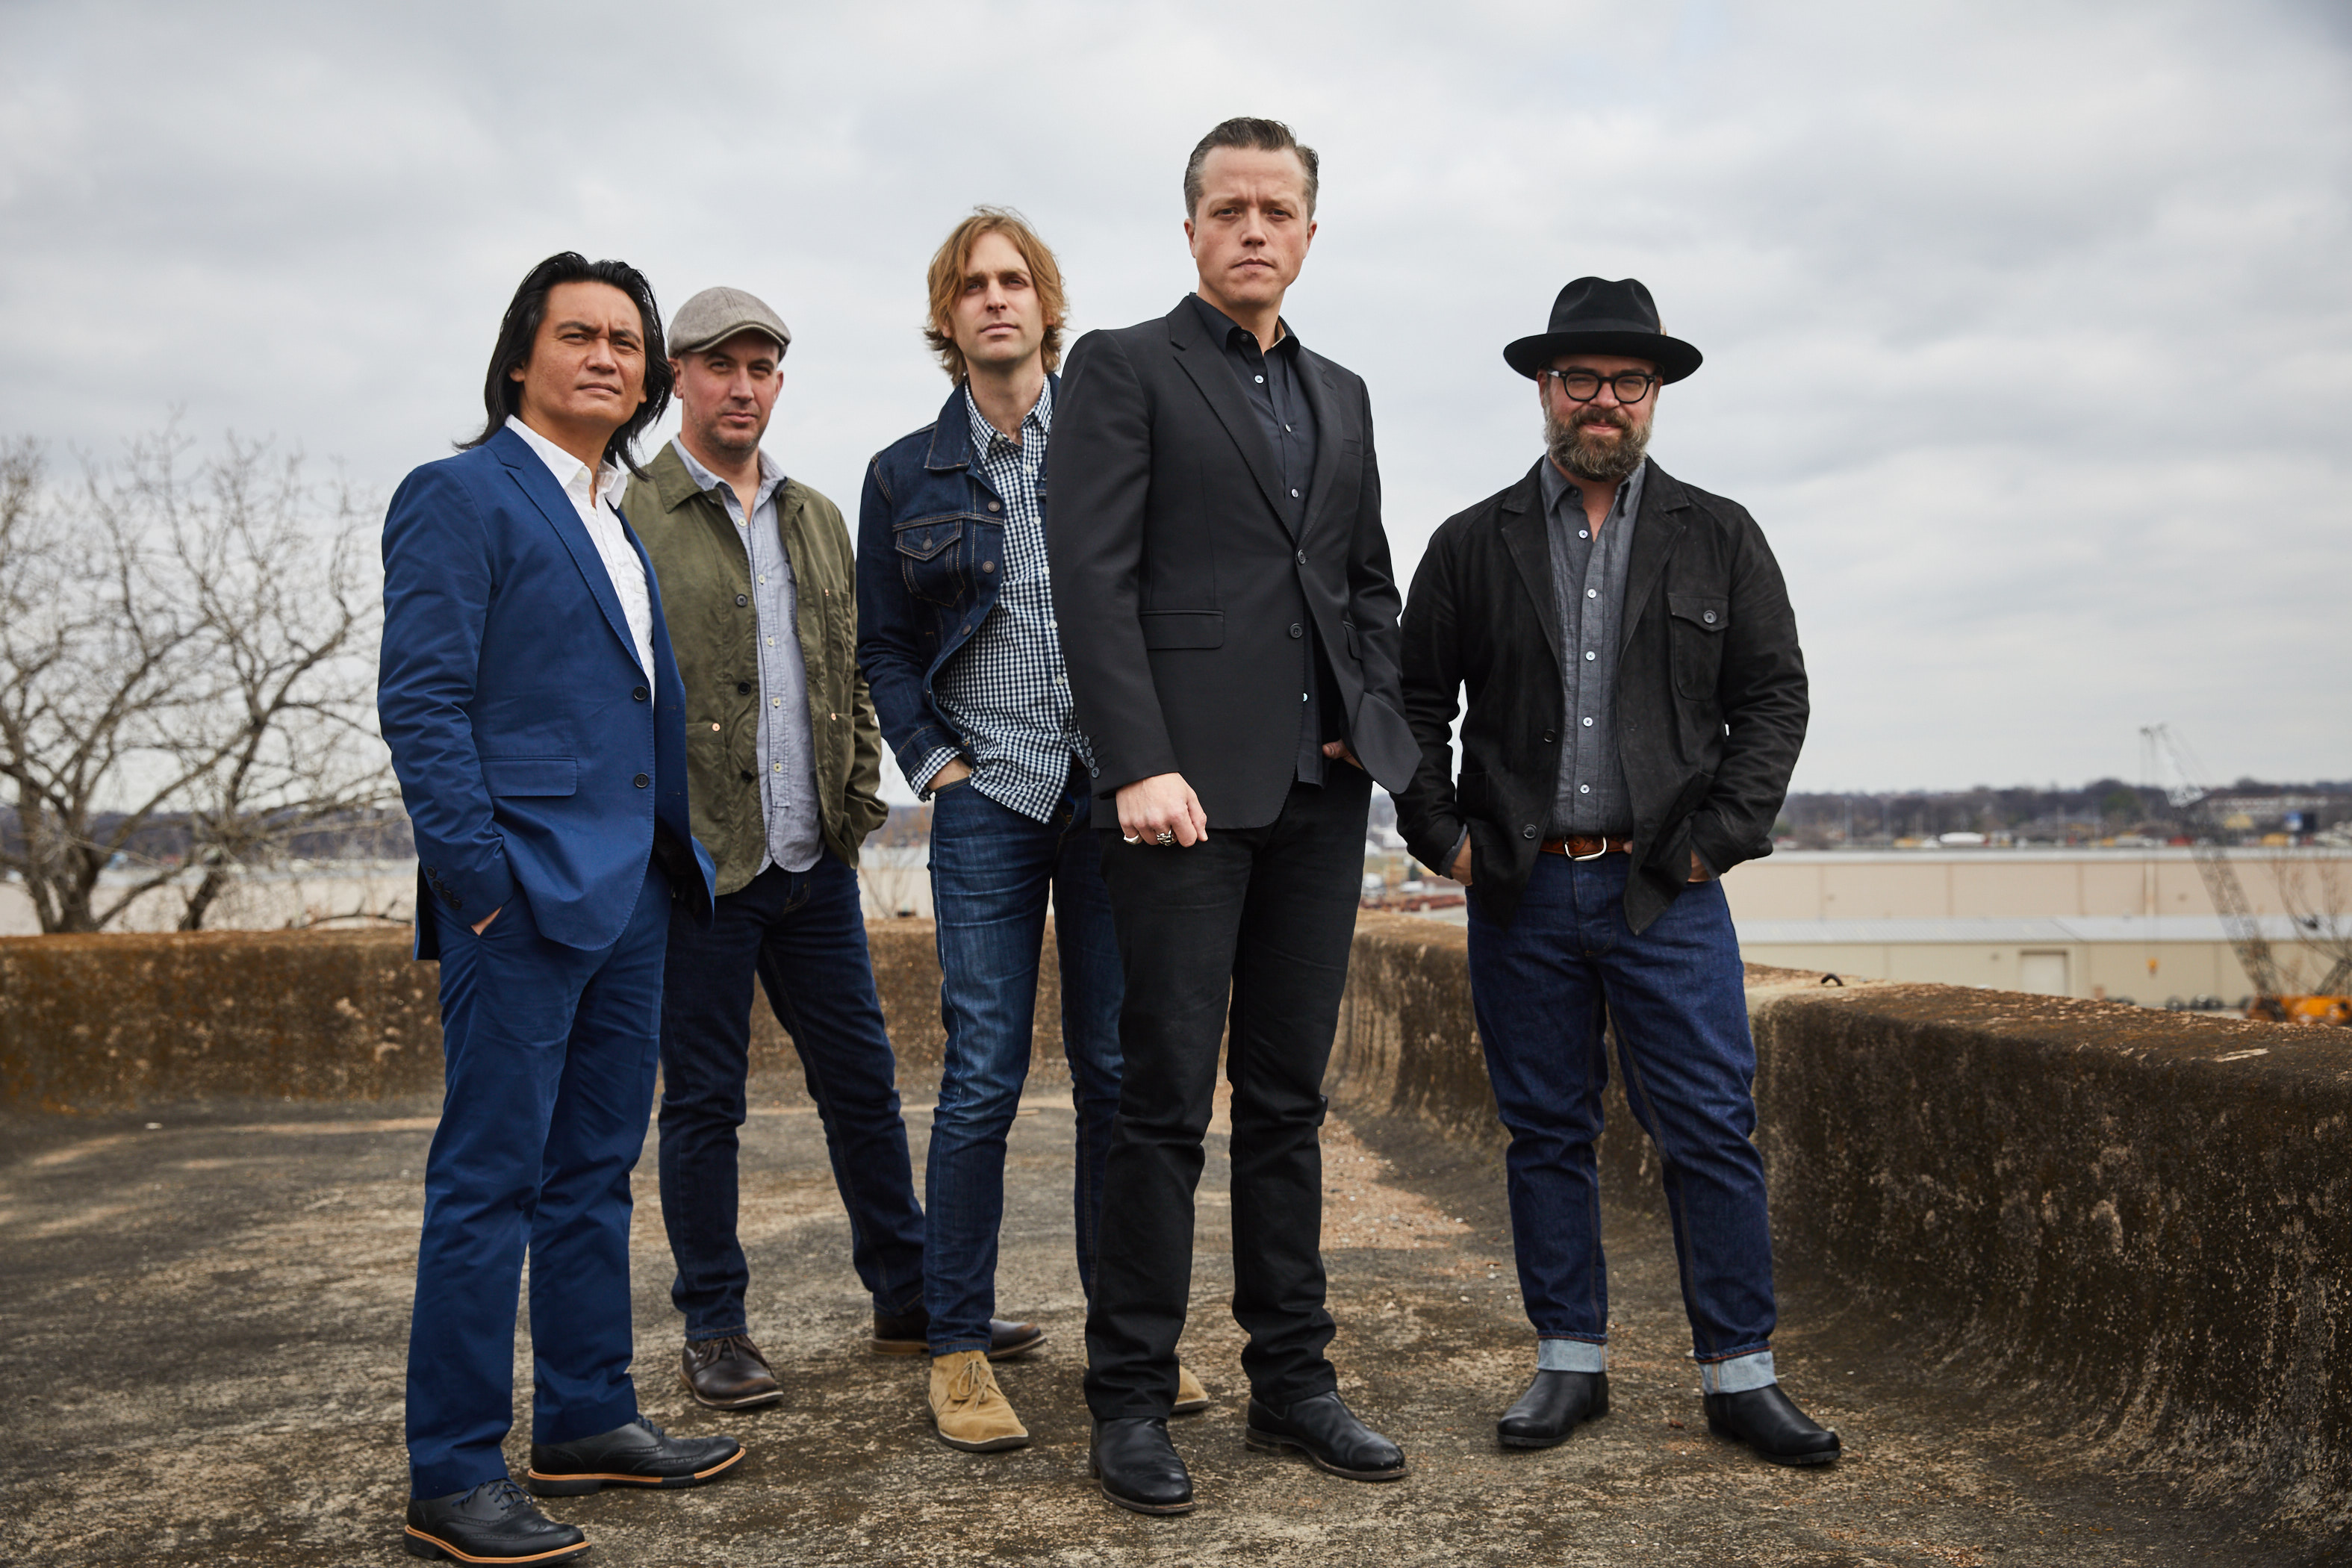 Jason Isbell and The 400 Unit to headline 2019 Master Musicians Festival